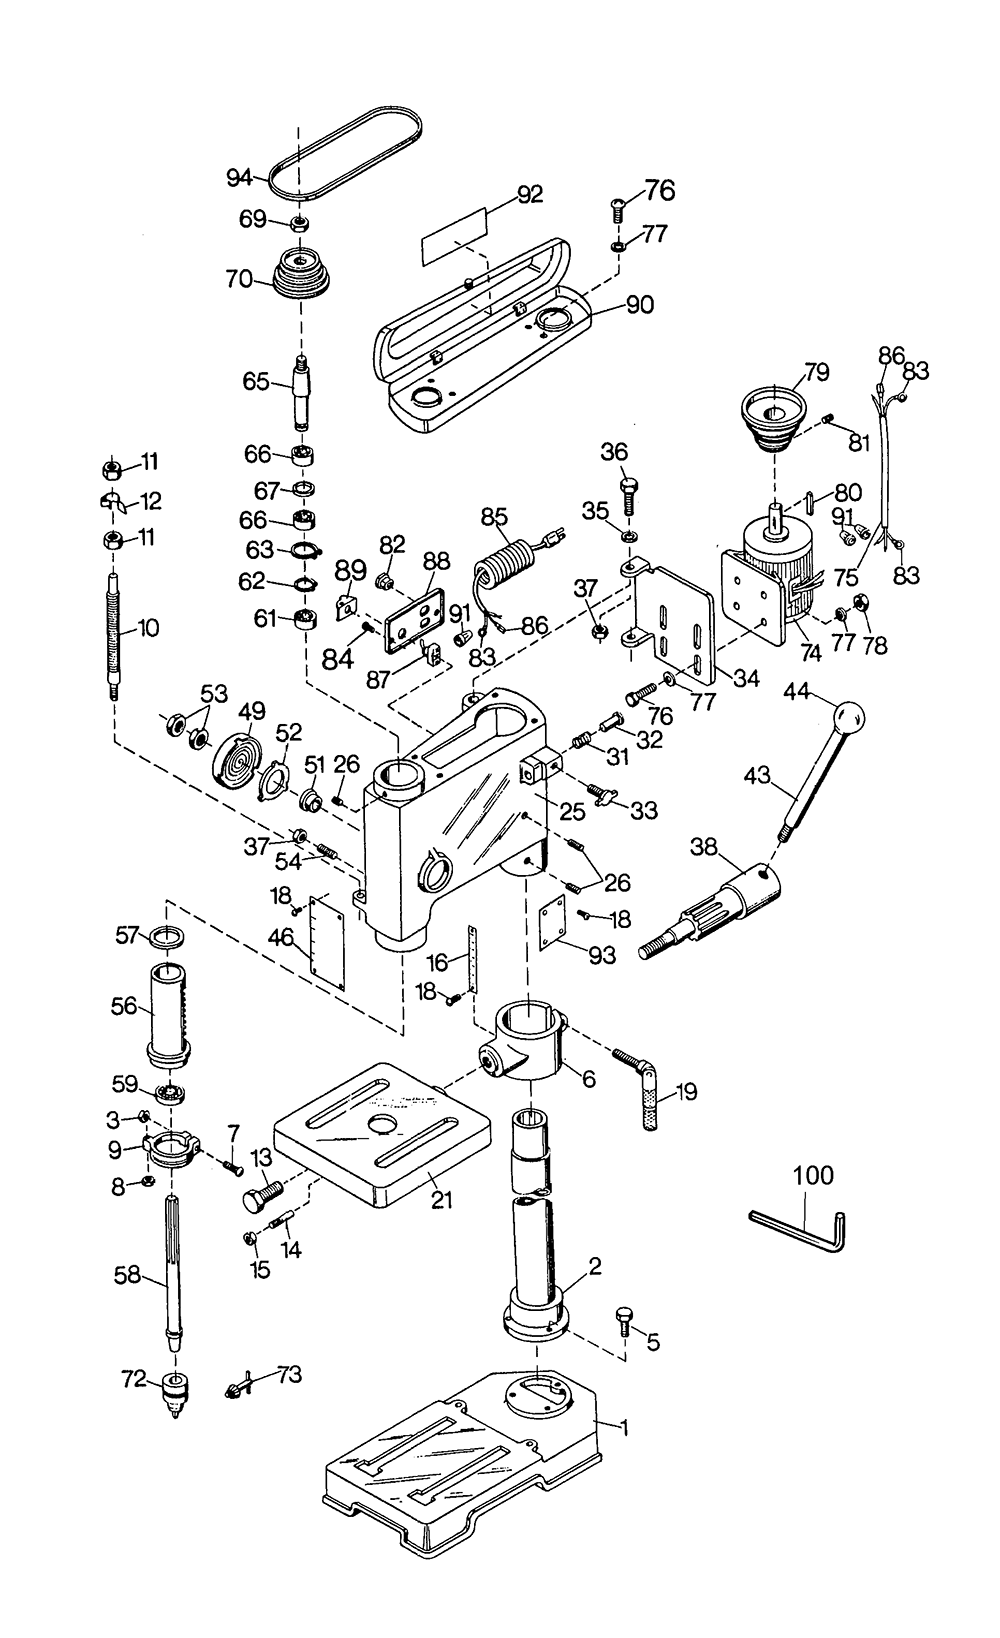 Drill Wiring Diagram Hvac Drawing Symbols The Gm 10391240 Radio For Karcher Pressure Washer Discover Your Jet Press Parts